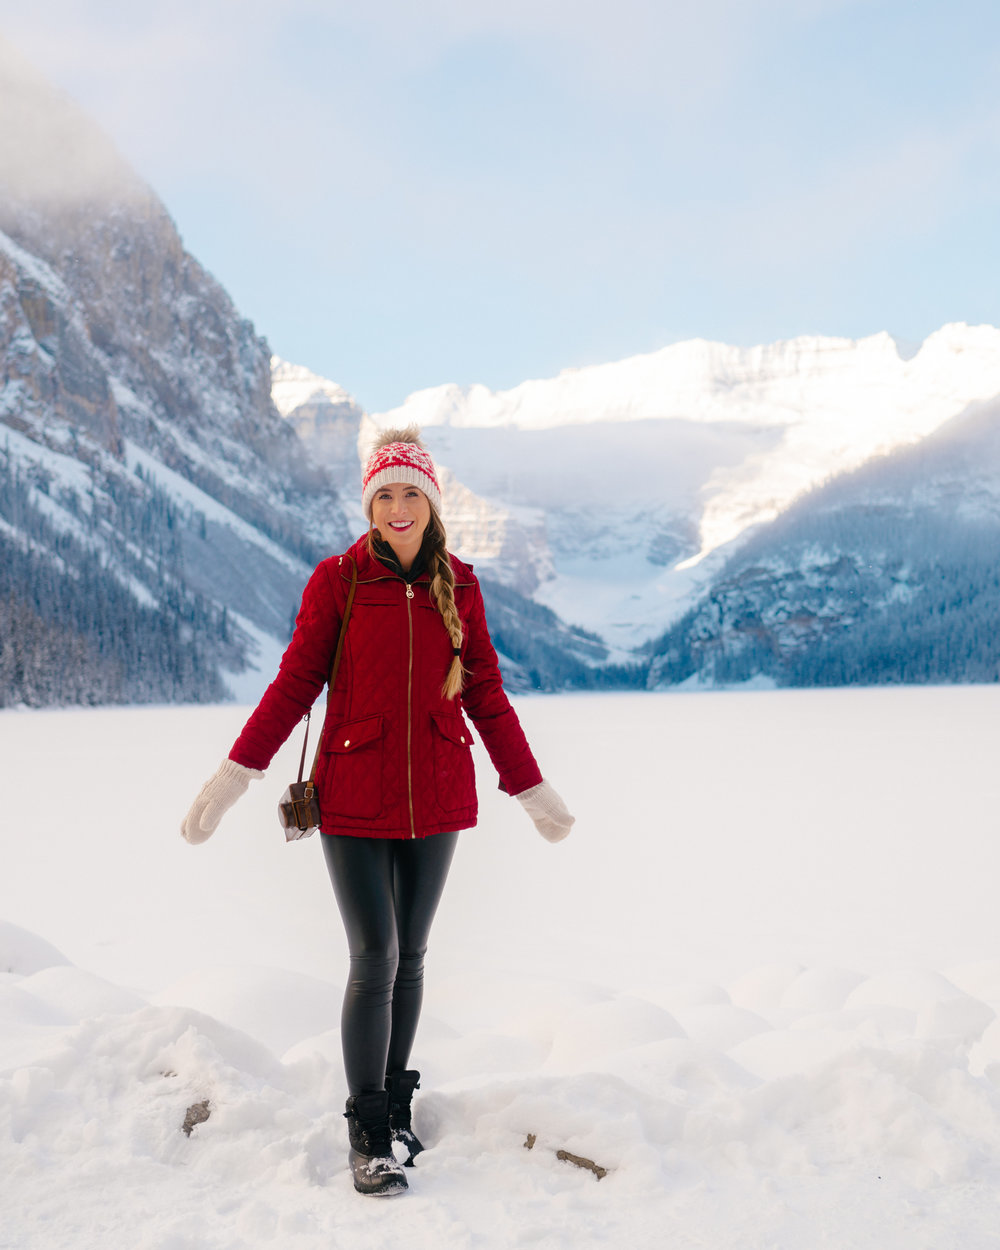 A Winter Guide to Banff National Park